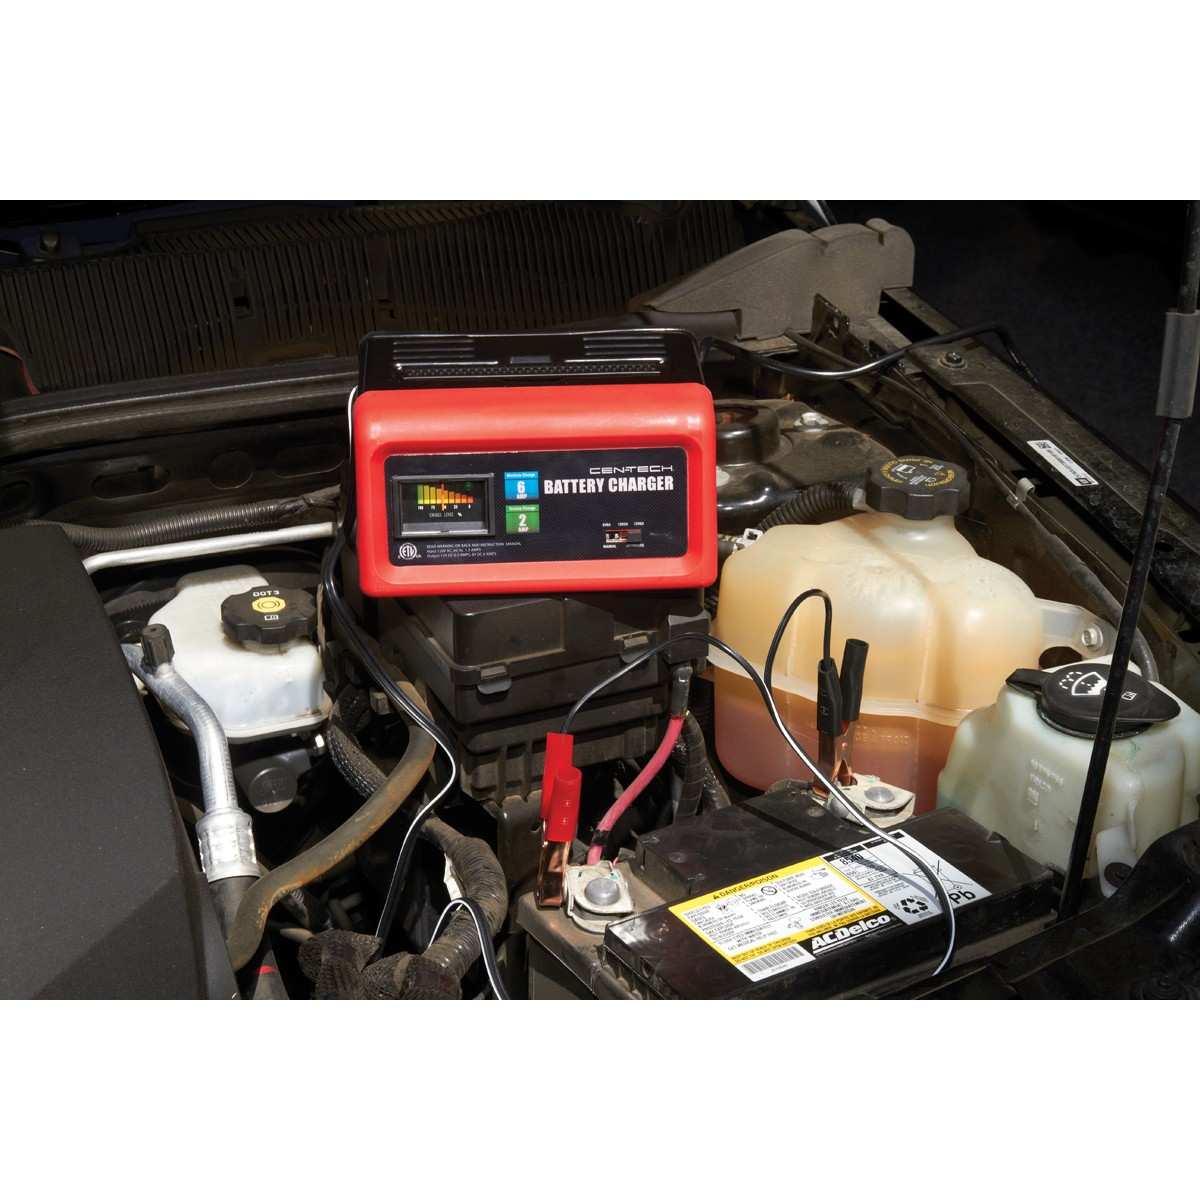 Cen-Tech Manual Charger 6/12V 2/6 Amp 6-1/2 ft. Long Battery Cables  Self-resetting 120V 60322 - Walmart.com